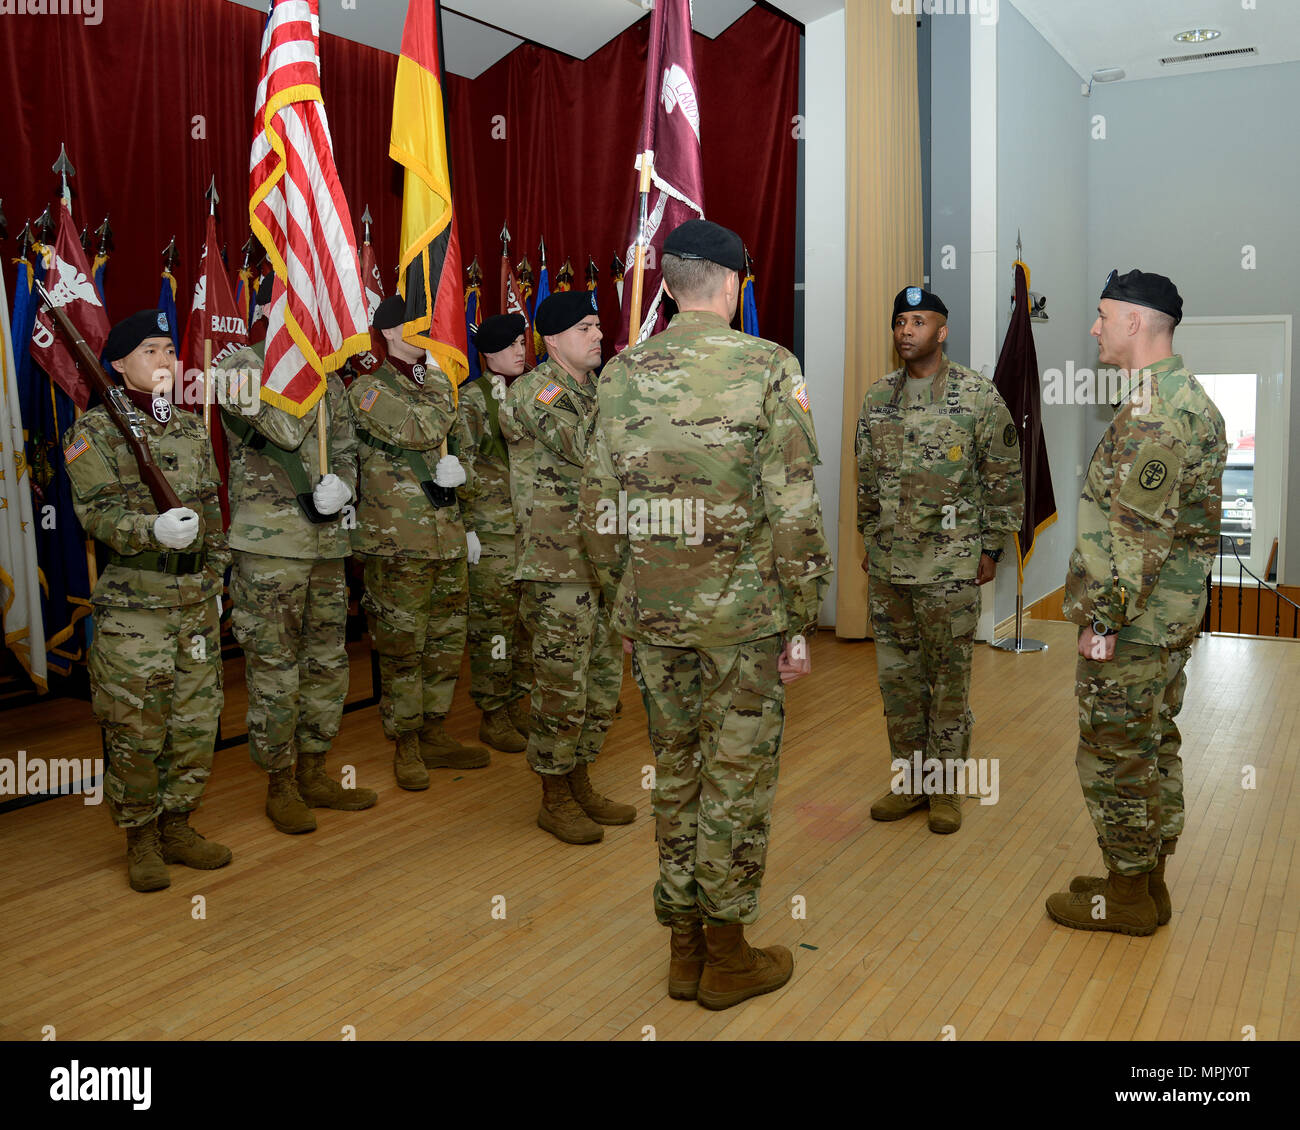 regional medical center change of responsibility ceremony march 17 2017 landstuhl germany us army photo by visual information specialist